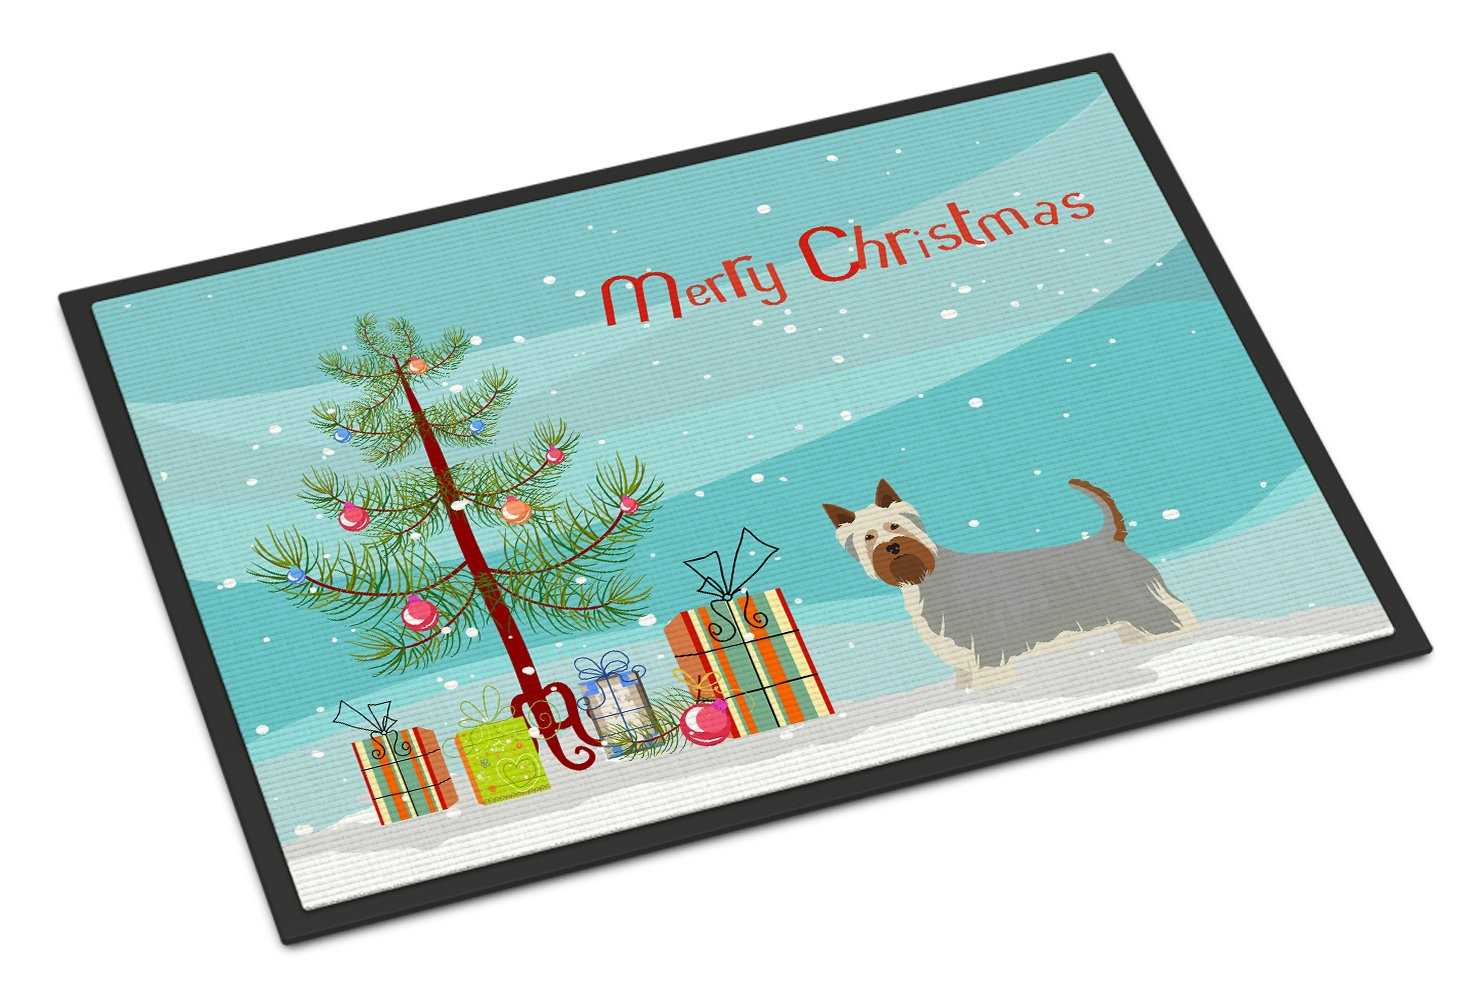 Australian Silky Terrier Christmas Tree Indoor or Outdoor Mat 24x36 CK3443JMAT by Caroline's Treasures